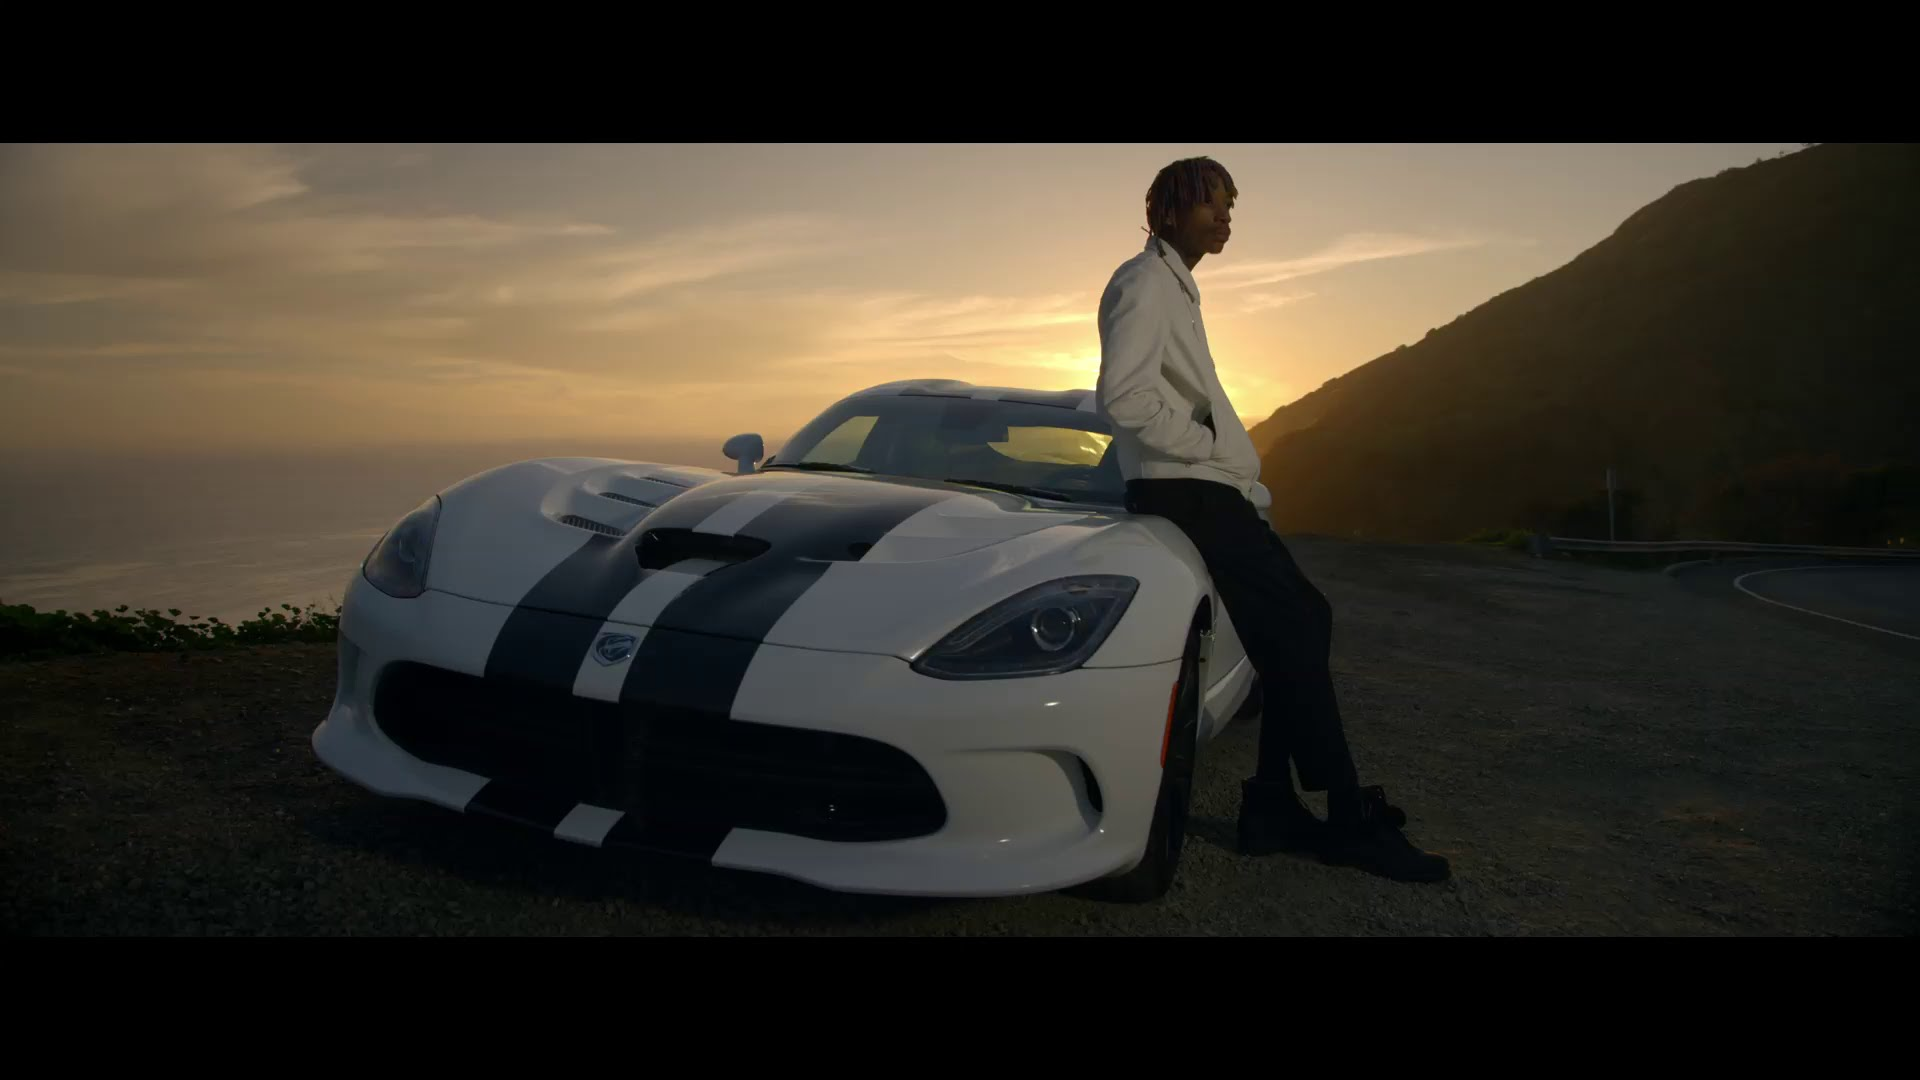 Wiz Khalifa - See You Again ft. Charlie Puth [Official Video] Furious 7 Soundtrack 1